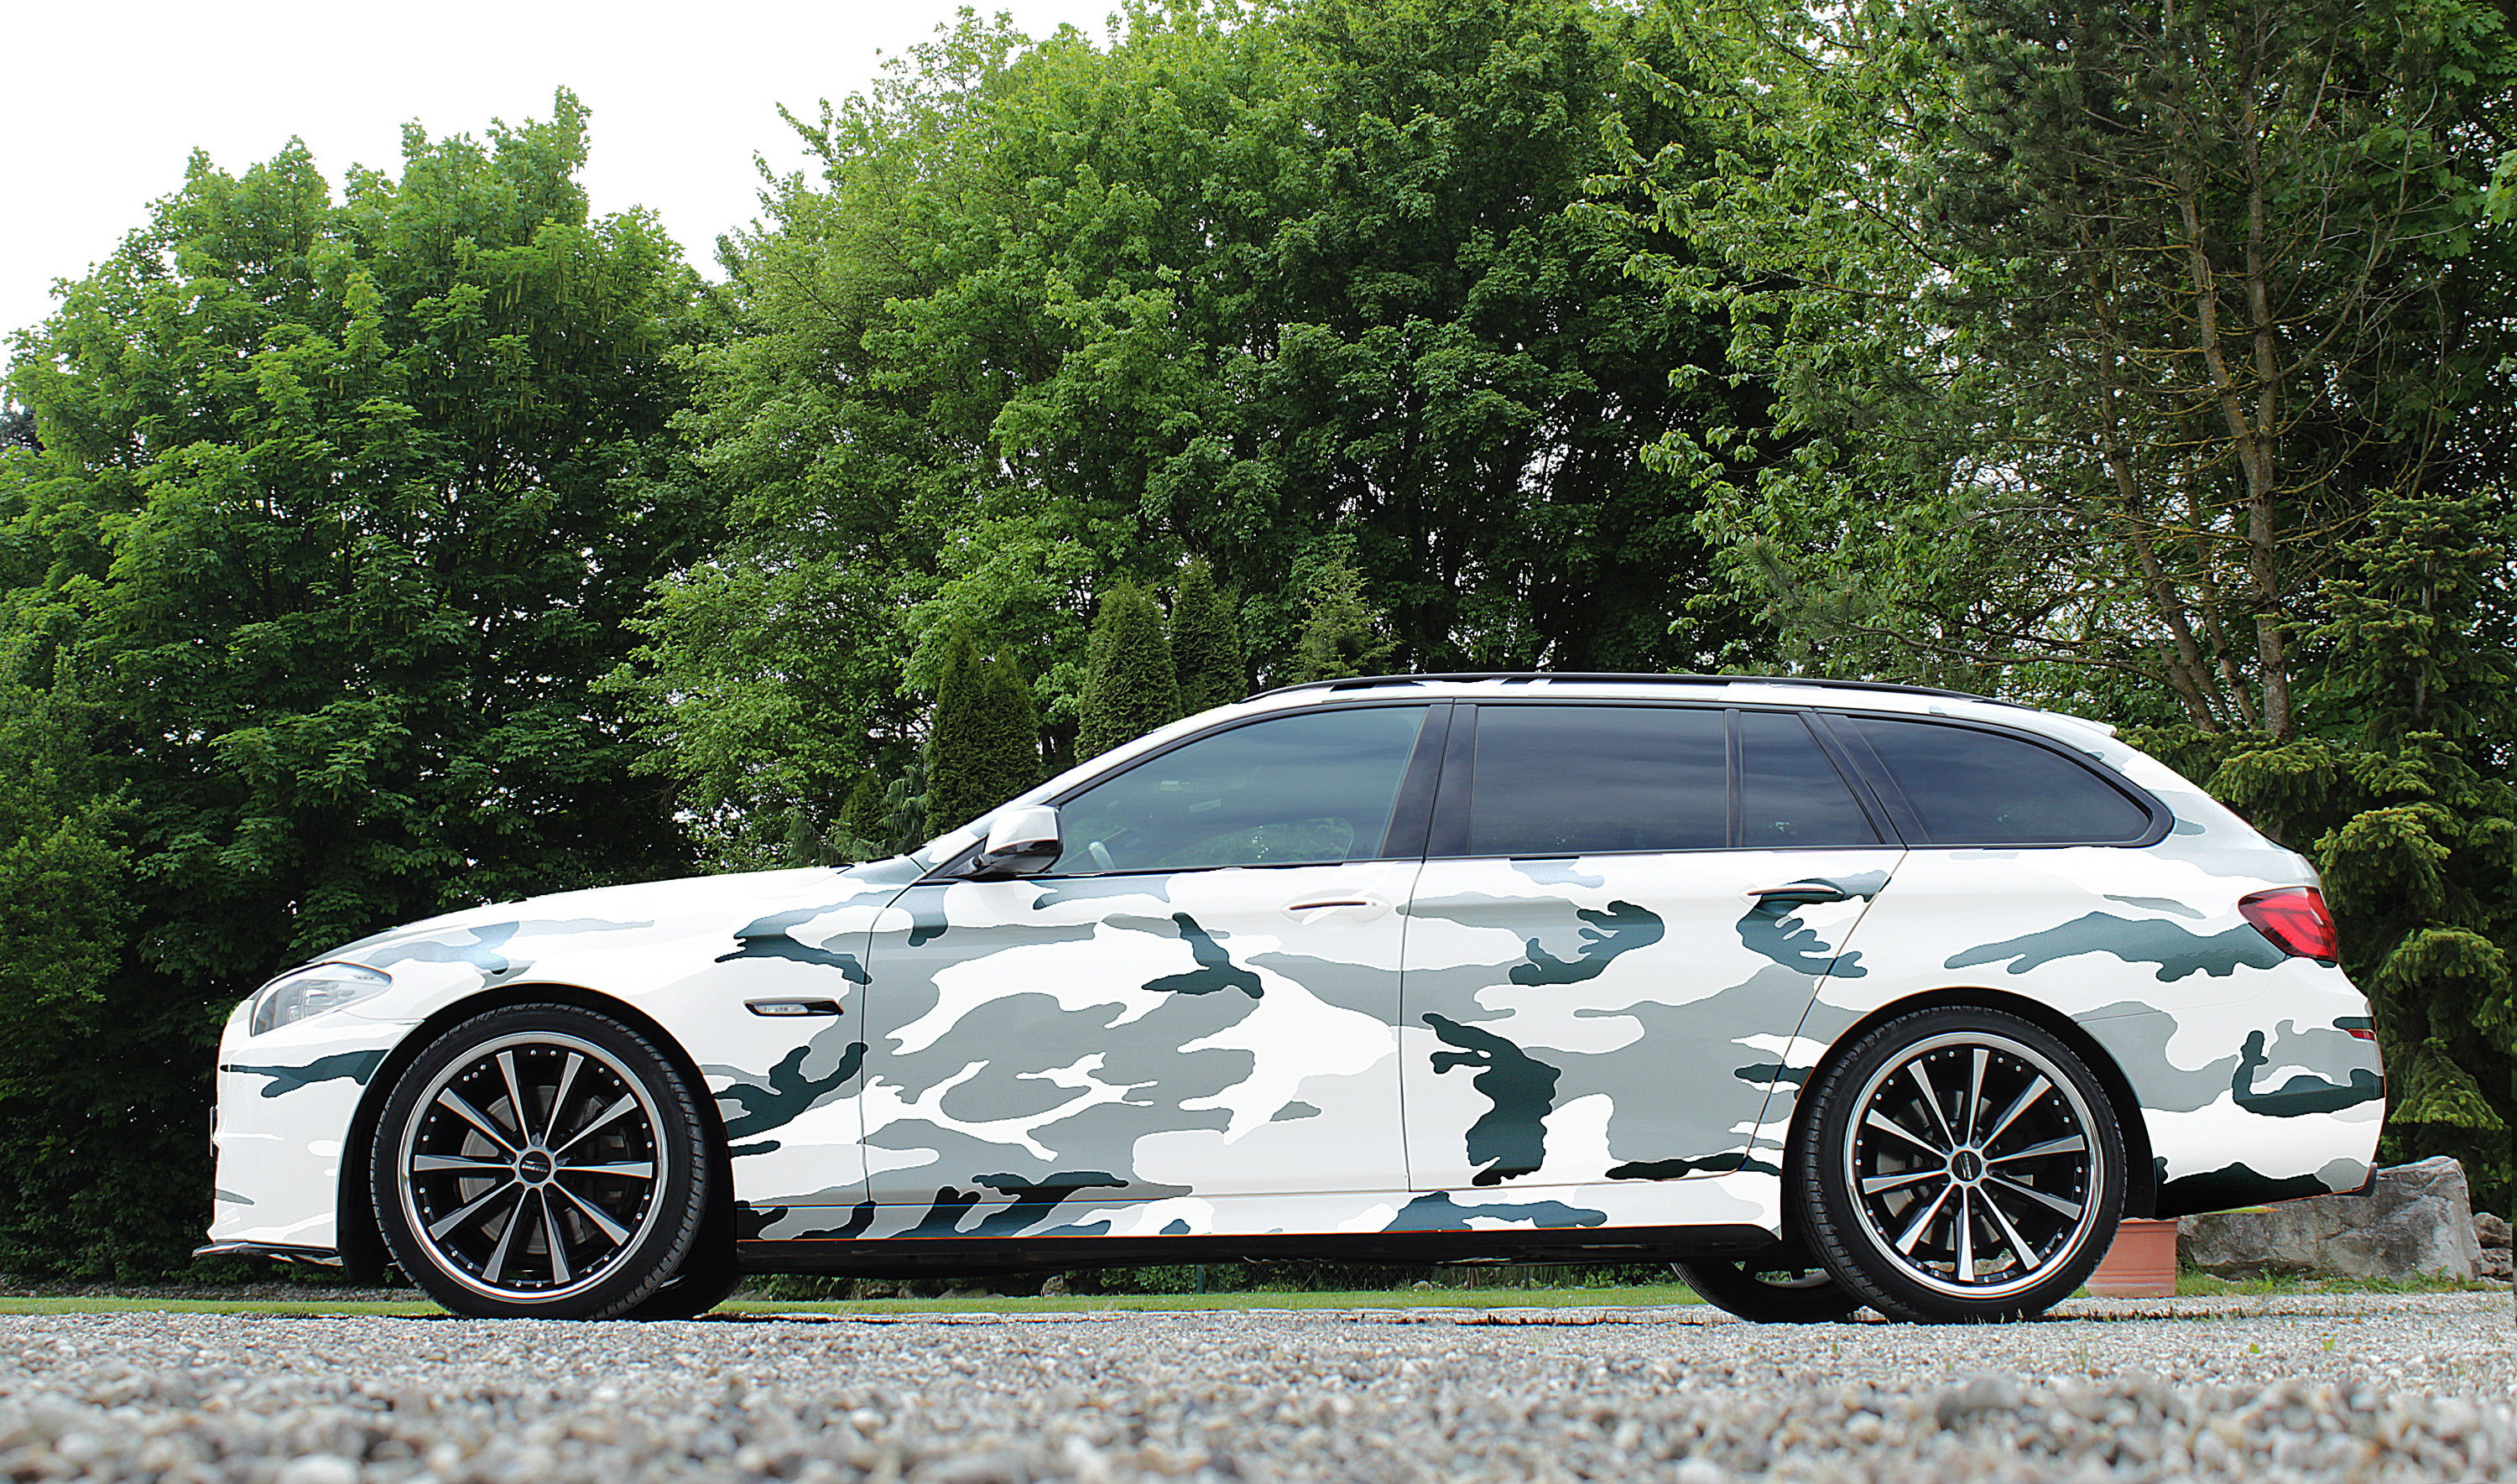 Cor Speed Team Reveals Refreshed Bmw 5 Series Touring Model